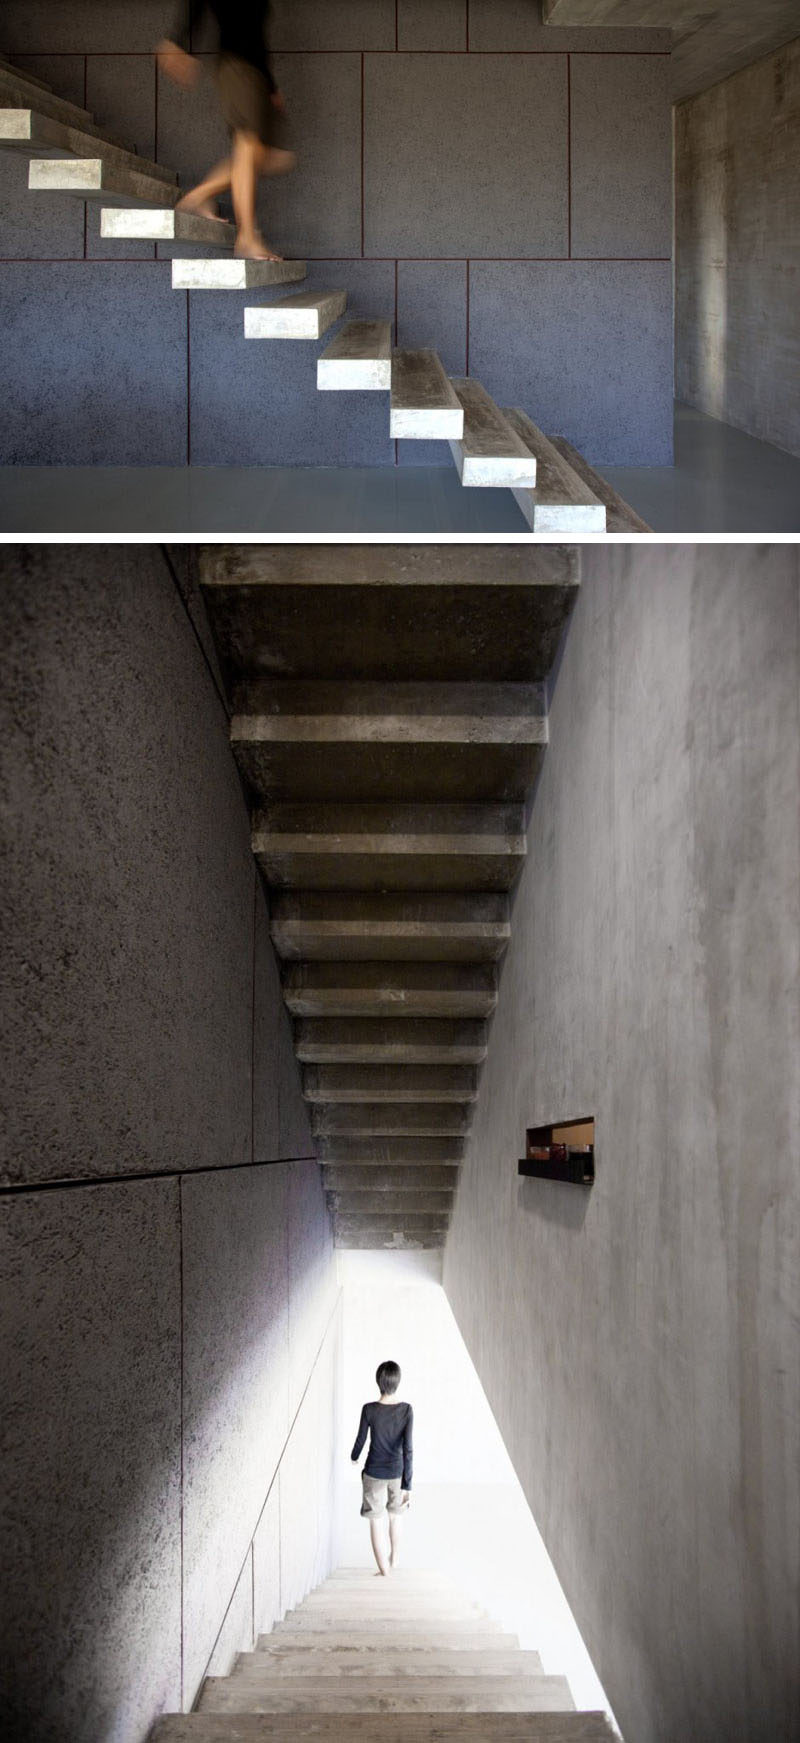 Floating concrete stairs take you to the upper floor of this Thai home.